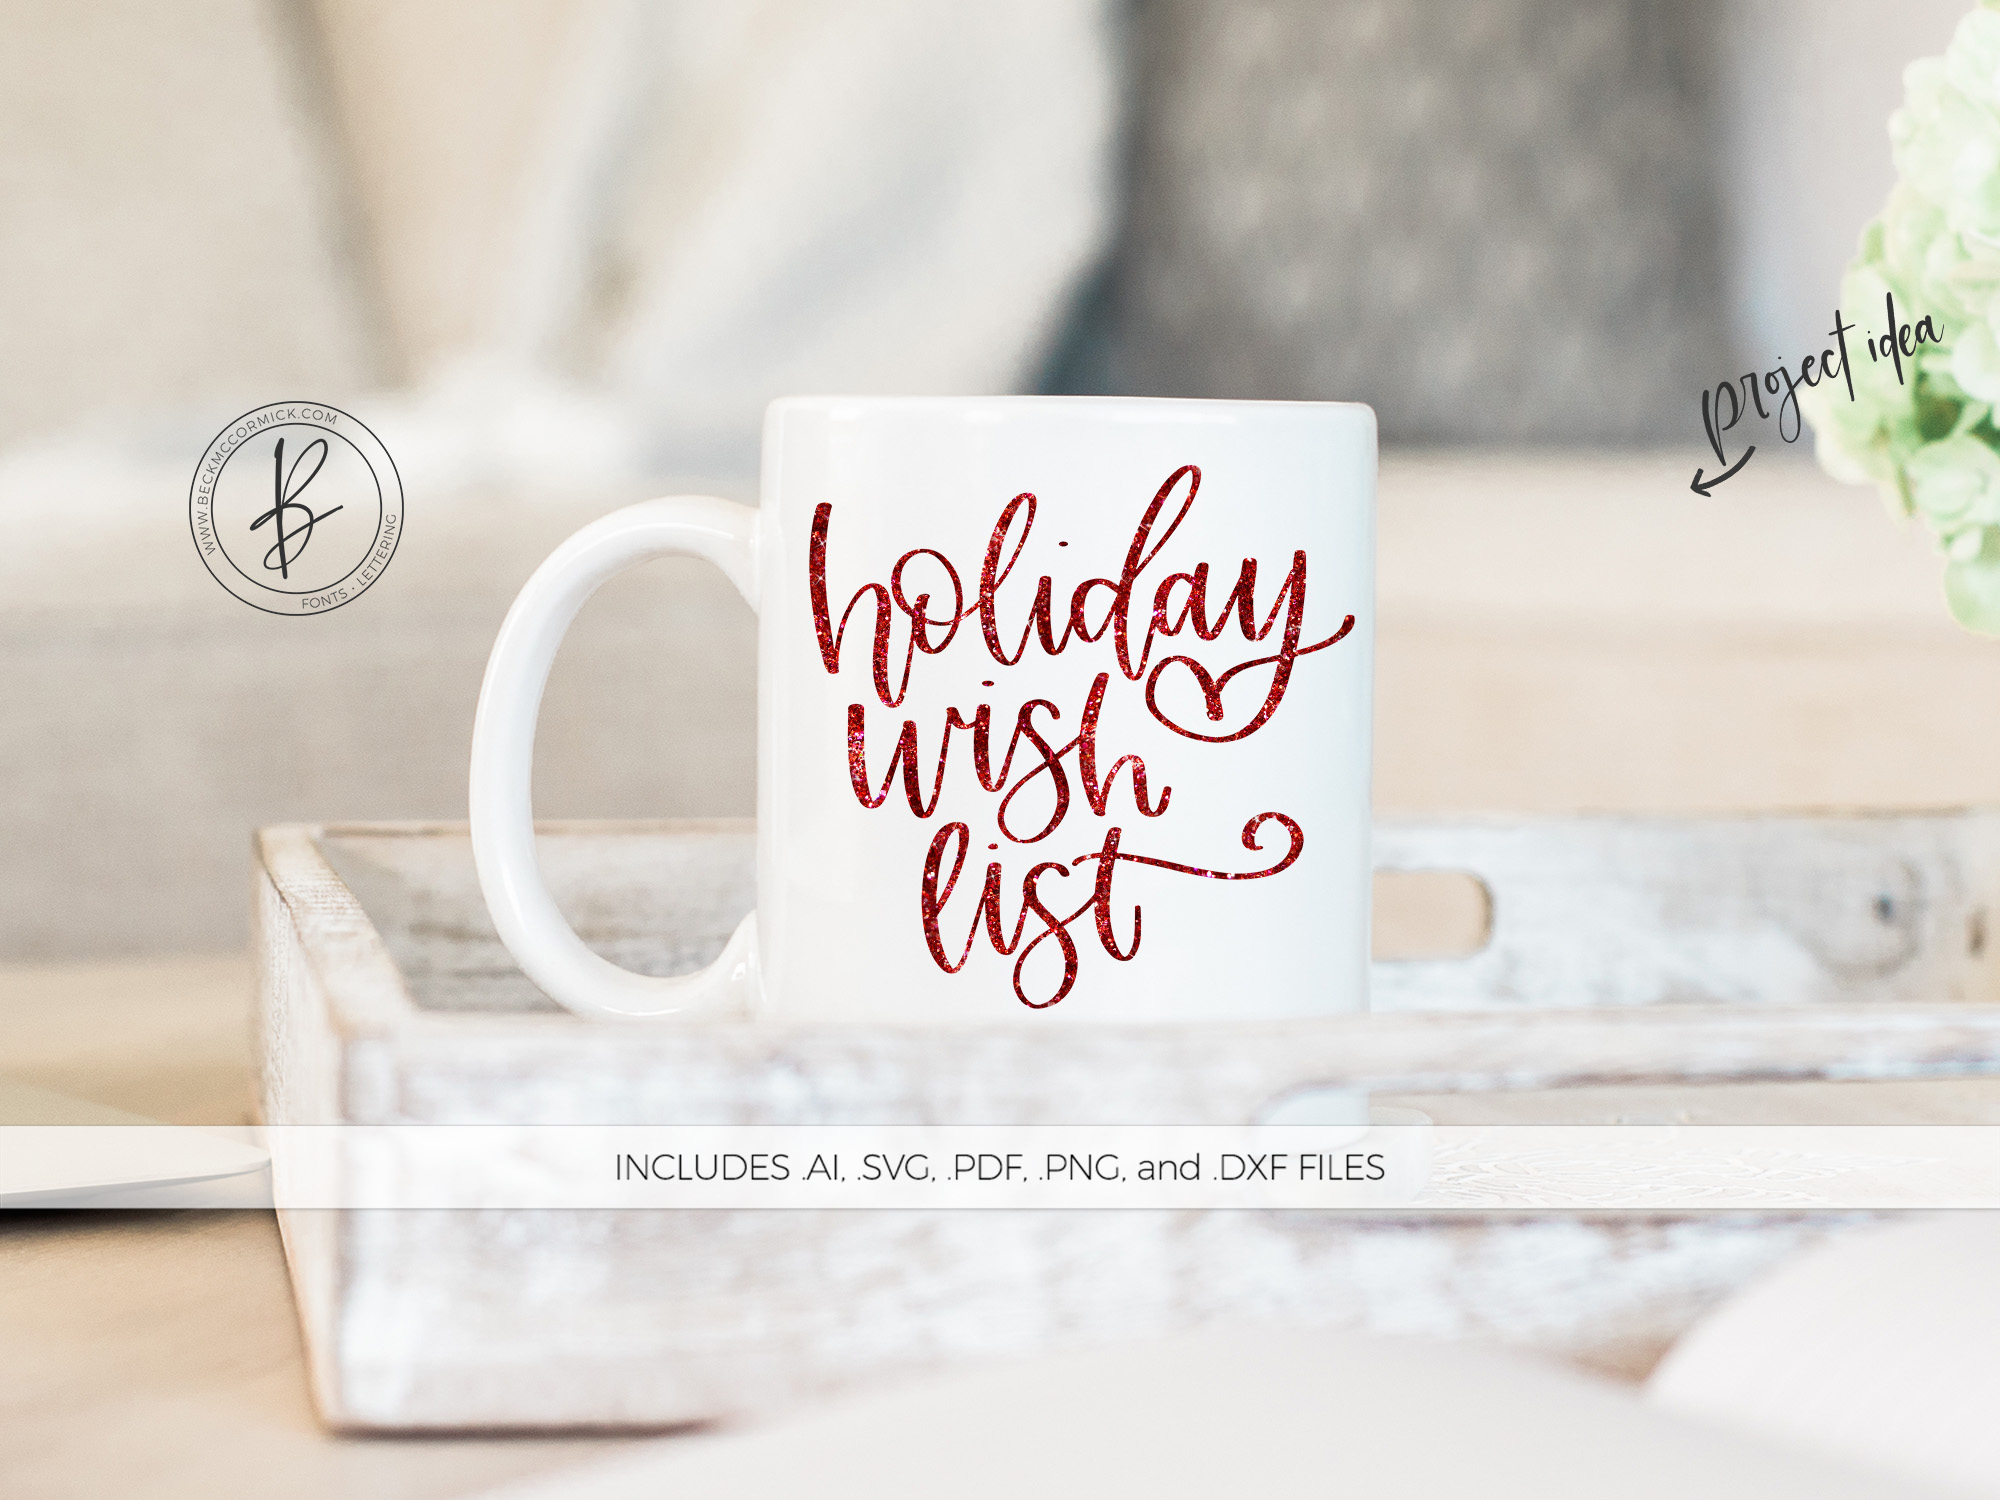 Download Free Holiday Wish List Graphic By Beckmccormick Creative Fabrica for Cricut Explore, Silhouette and other cutting machines.